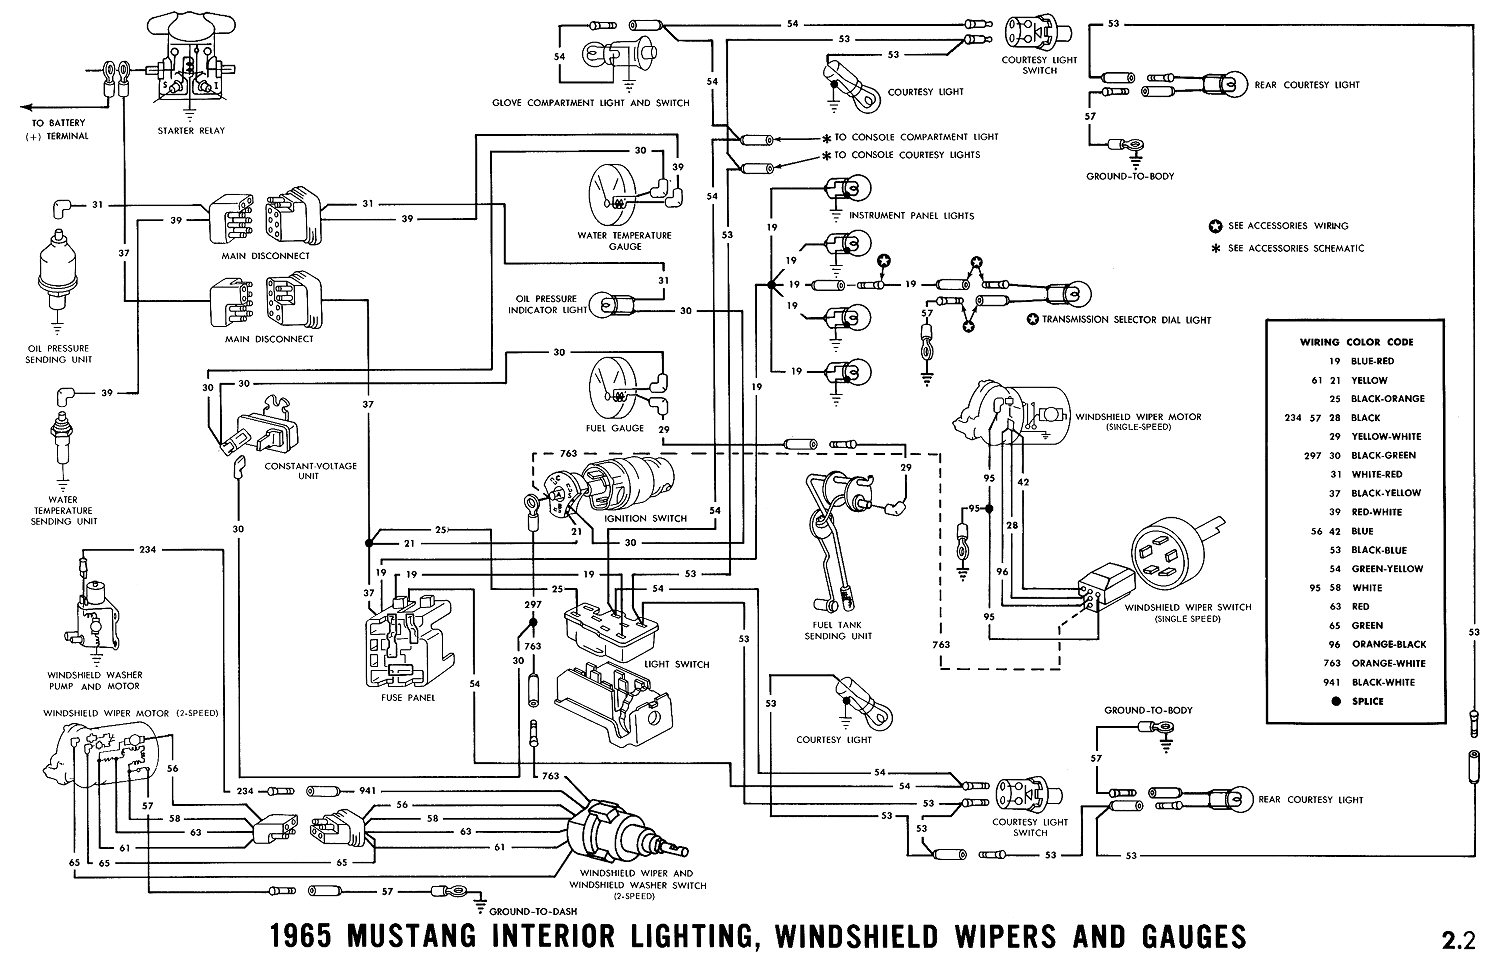 Ignition wiring diagram 1969 mustang wiring diagram and wiring diagram for 1969 mustang map light readingrat net sciox Gallery